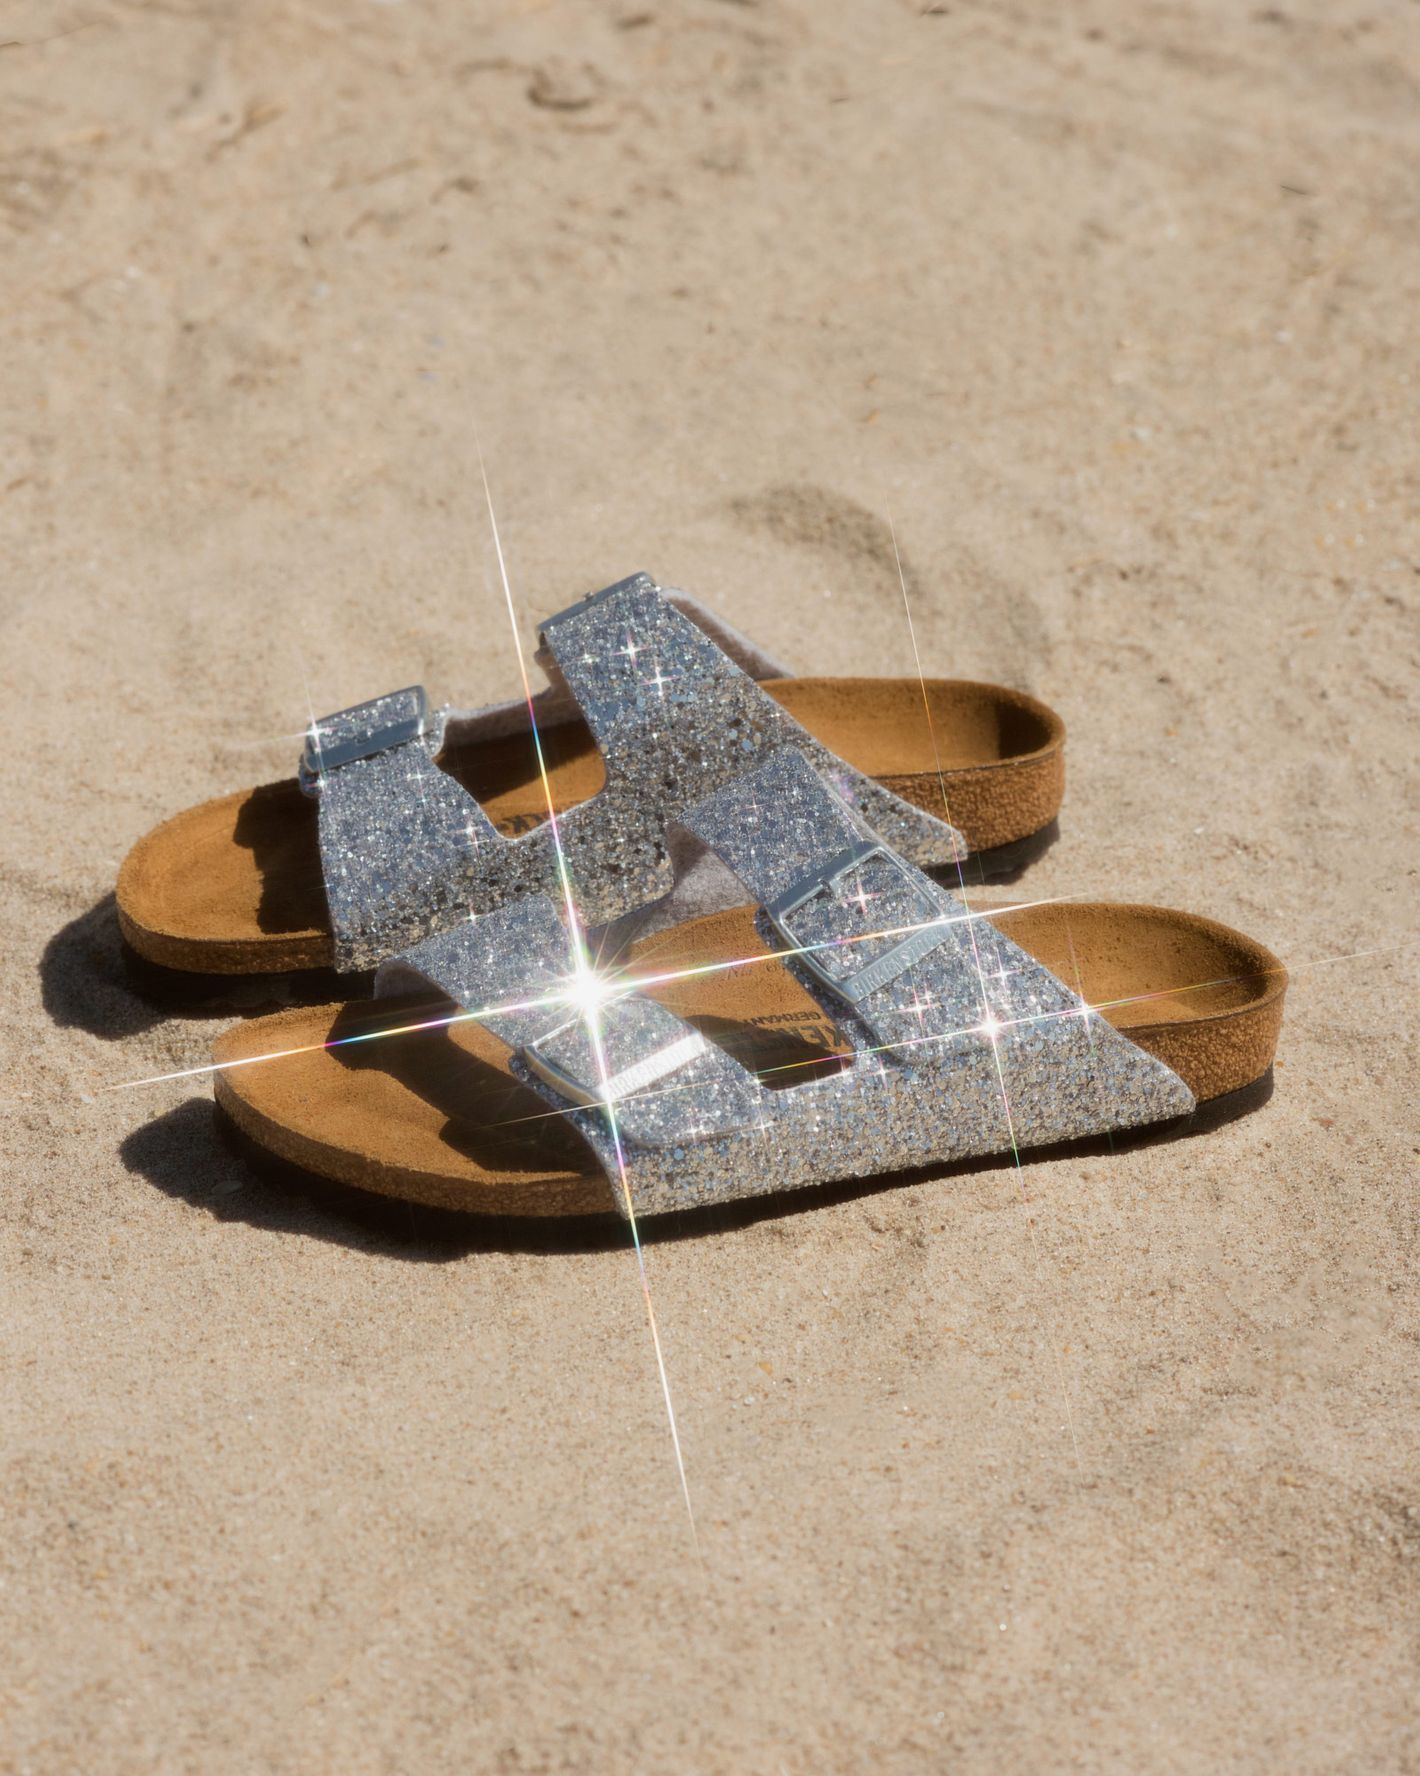 Opening Ceremony And Birkenstock Made Sparkly Sandals